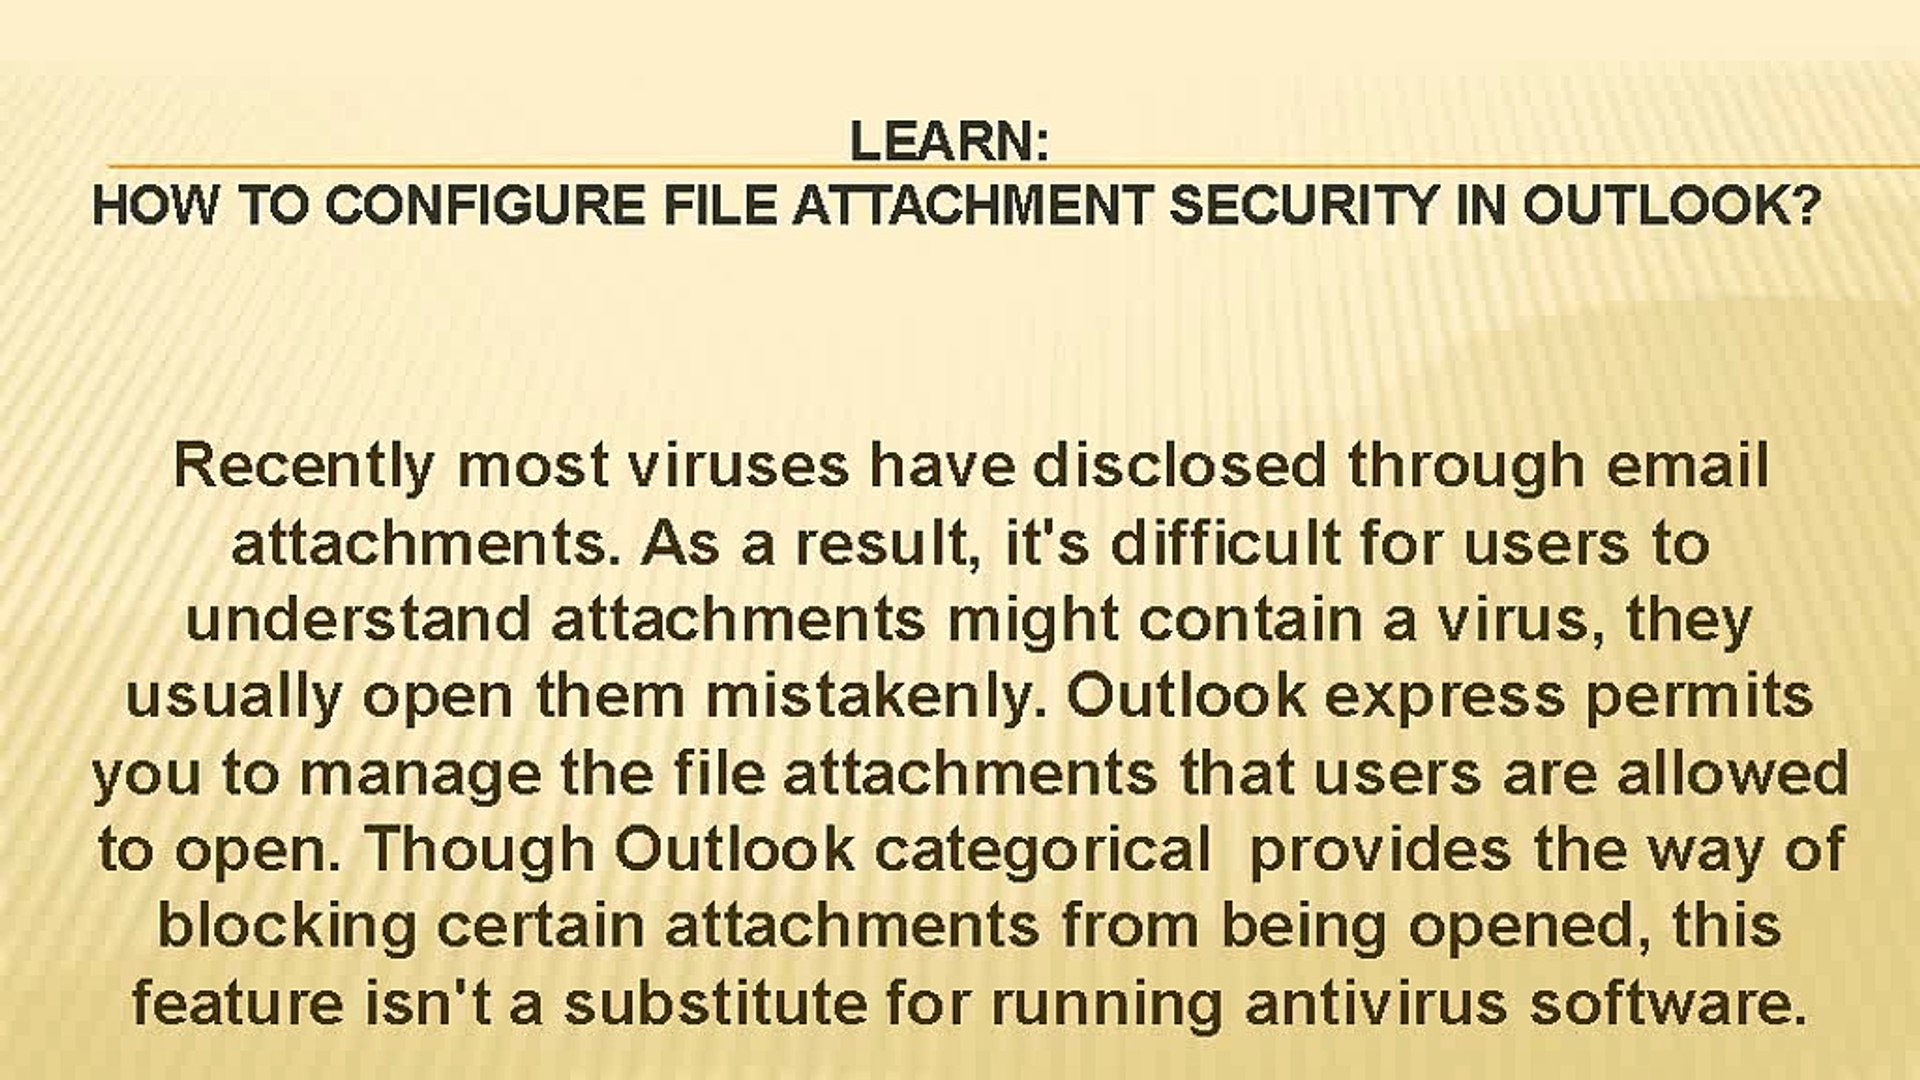 How to Configure File Attachment Security in Outlook